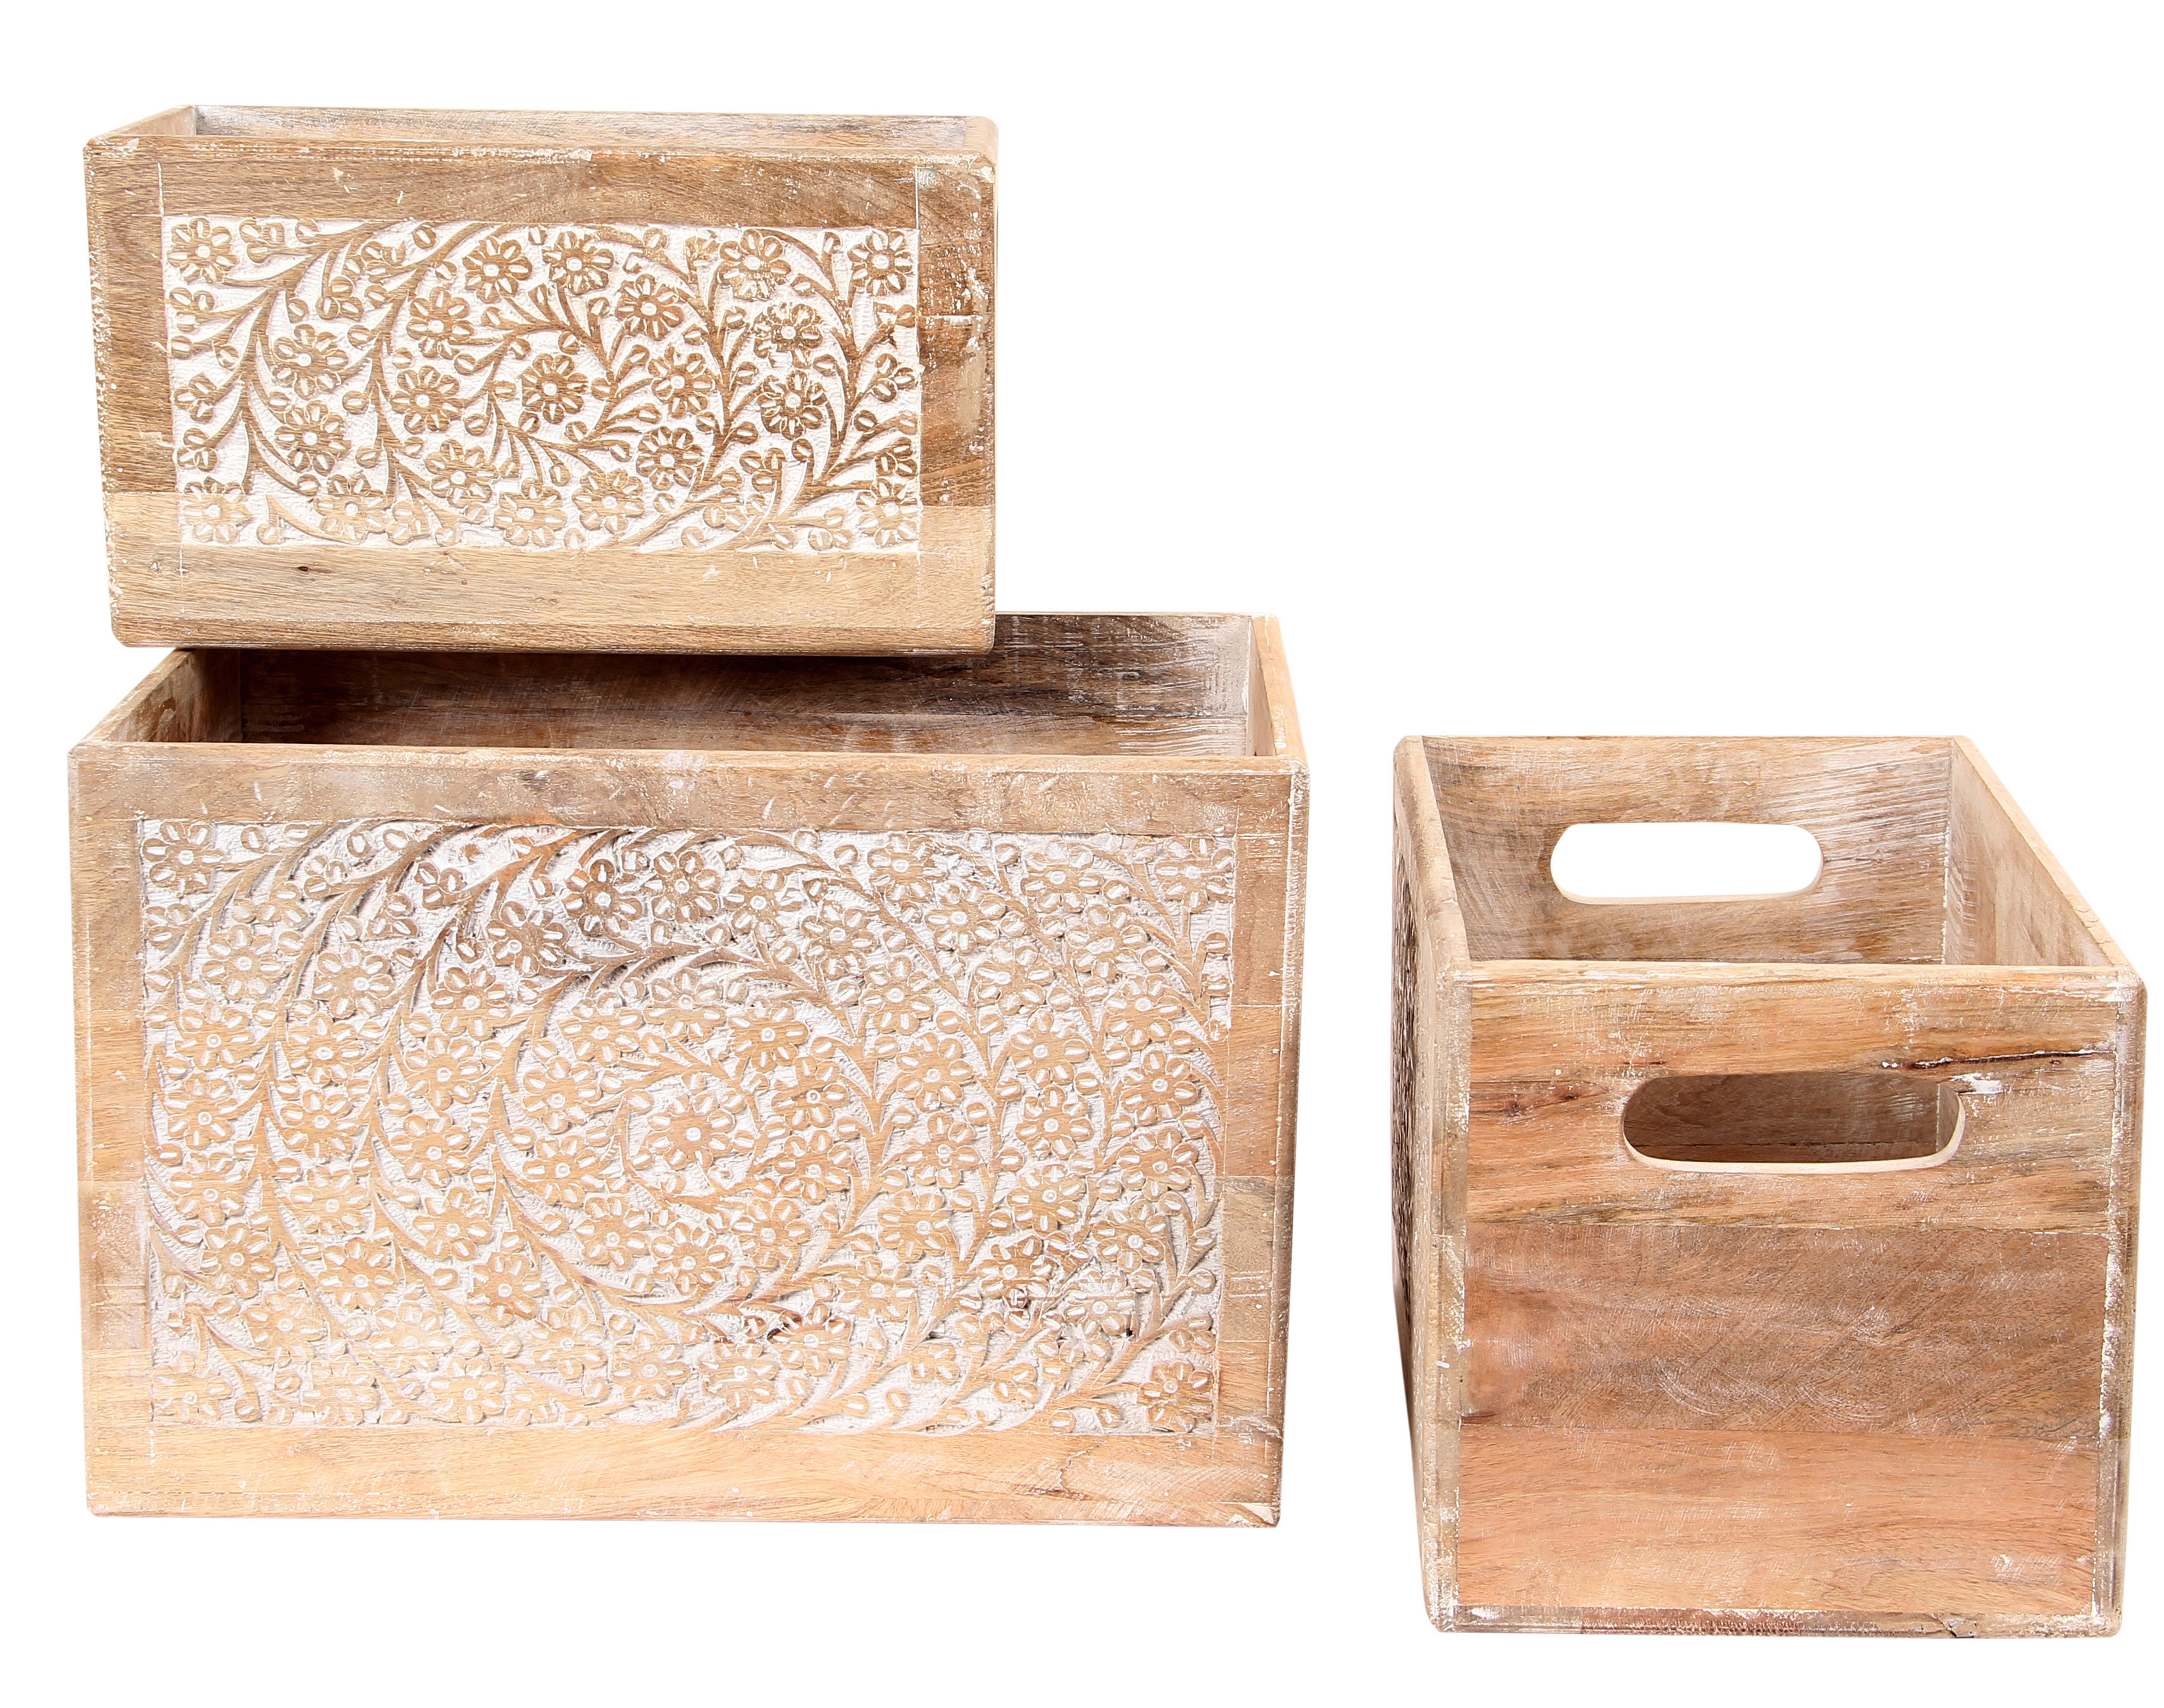 Most Recent 4 Piece Handwoven Wheel Wall Decor Sets With Regard To Bungalow Rose Distressed Solid Wood 3 Piece Decorative Crate Set (View 16 of 20)